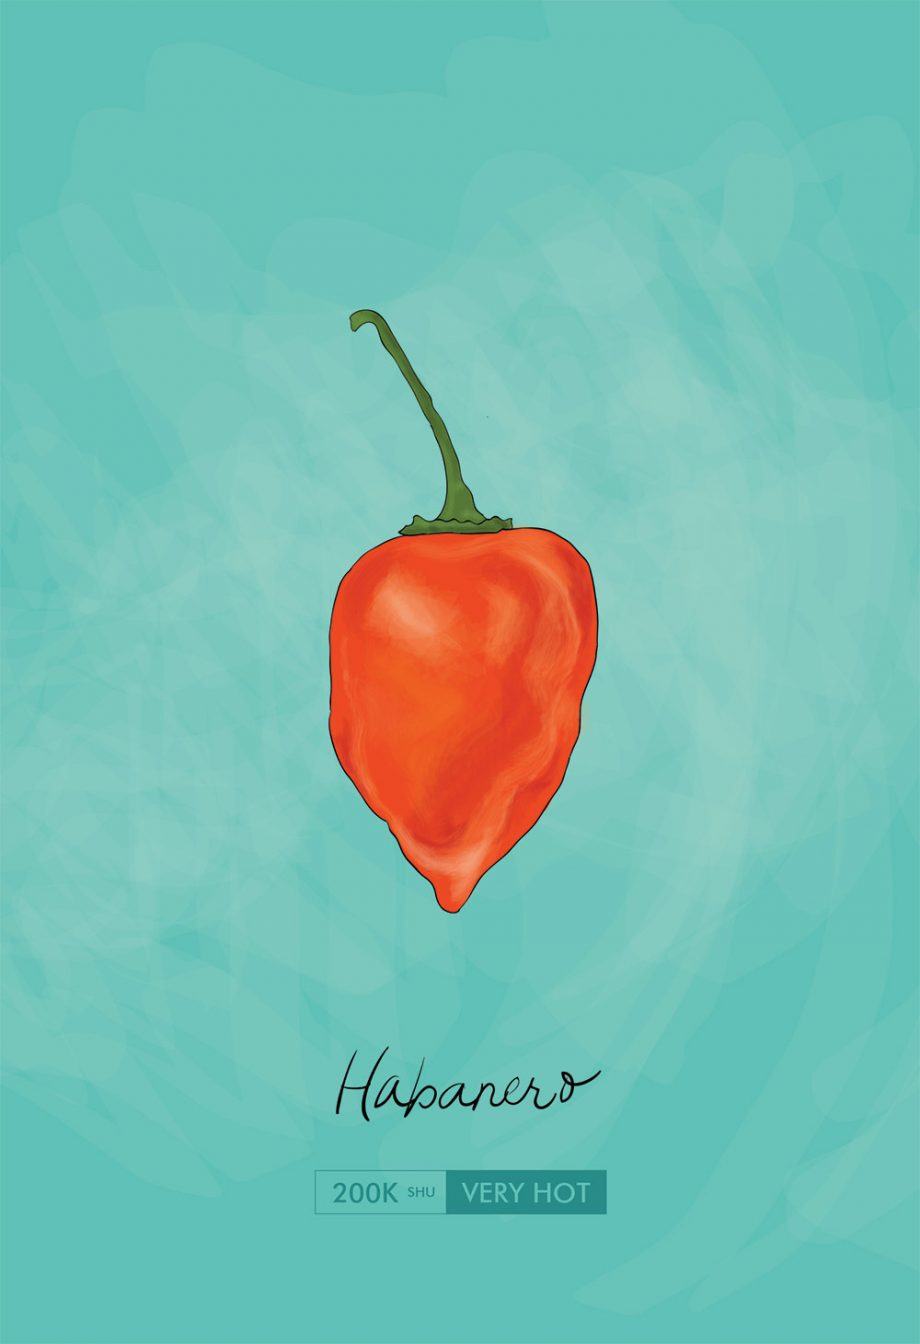 Habanero Chili Pepper Kitchen Giclee Art Print Cotton Canvas and Paper Canvas Mexican Rustic Chile Theme Wall Decor